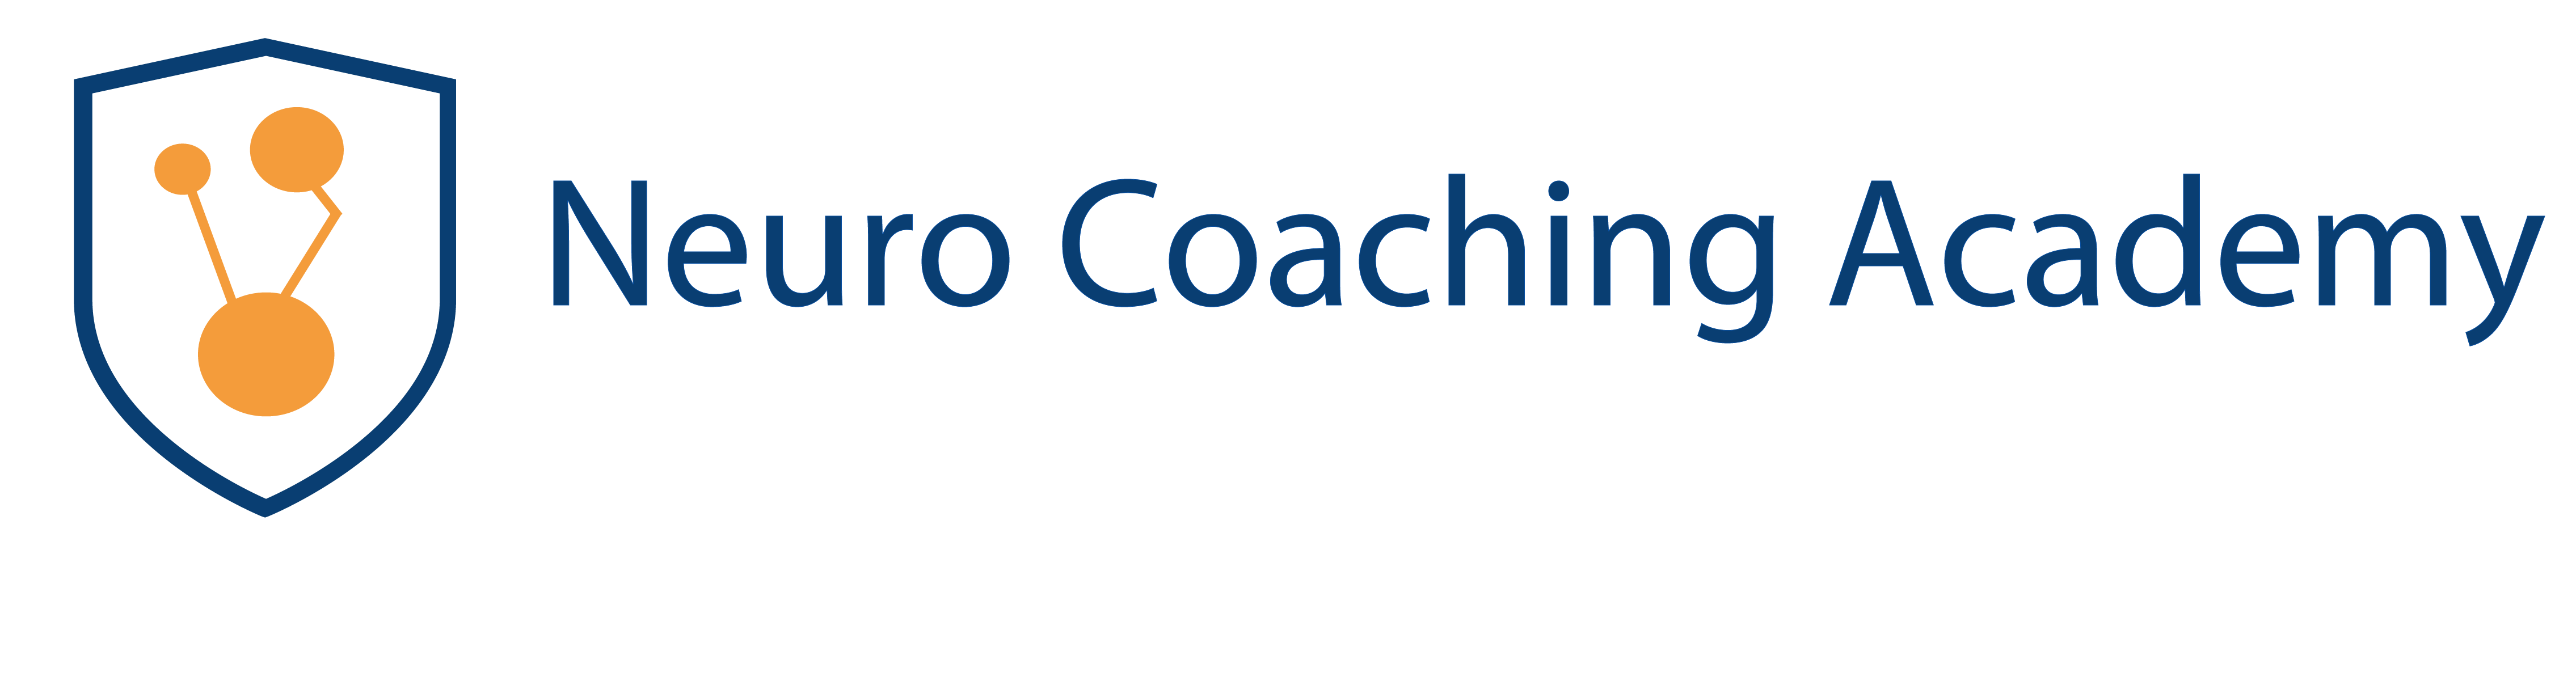 The Neurocoaching Academy